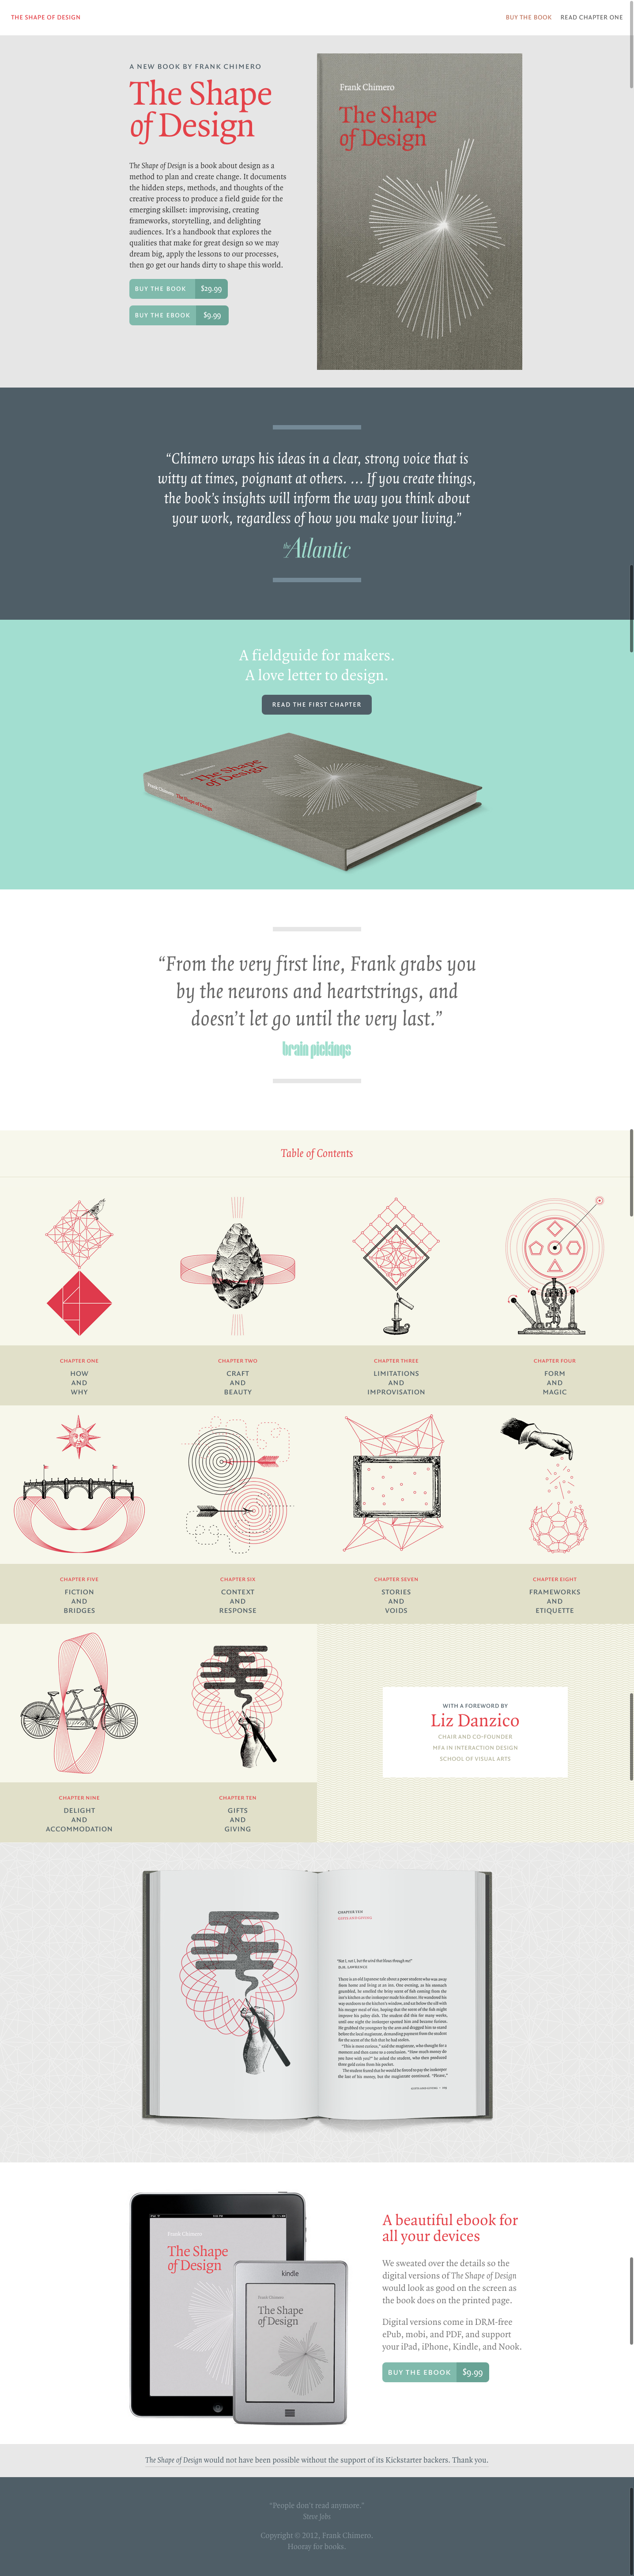 The Shape of Design - A book by Frank Chimero | Awesome Screenshot